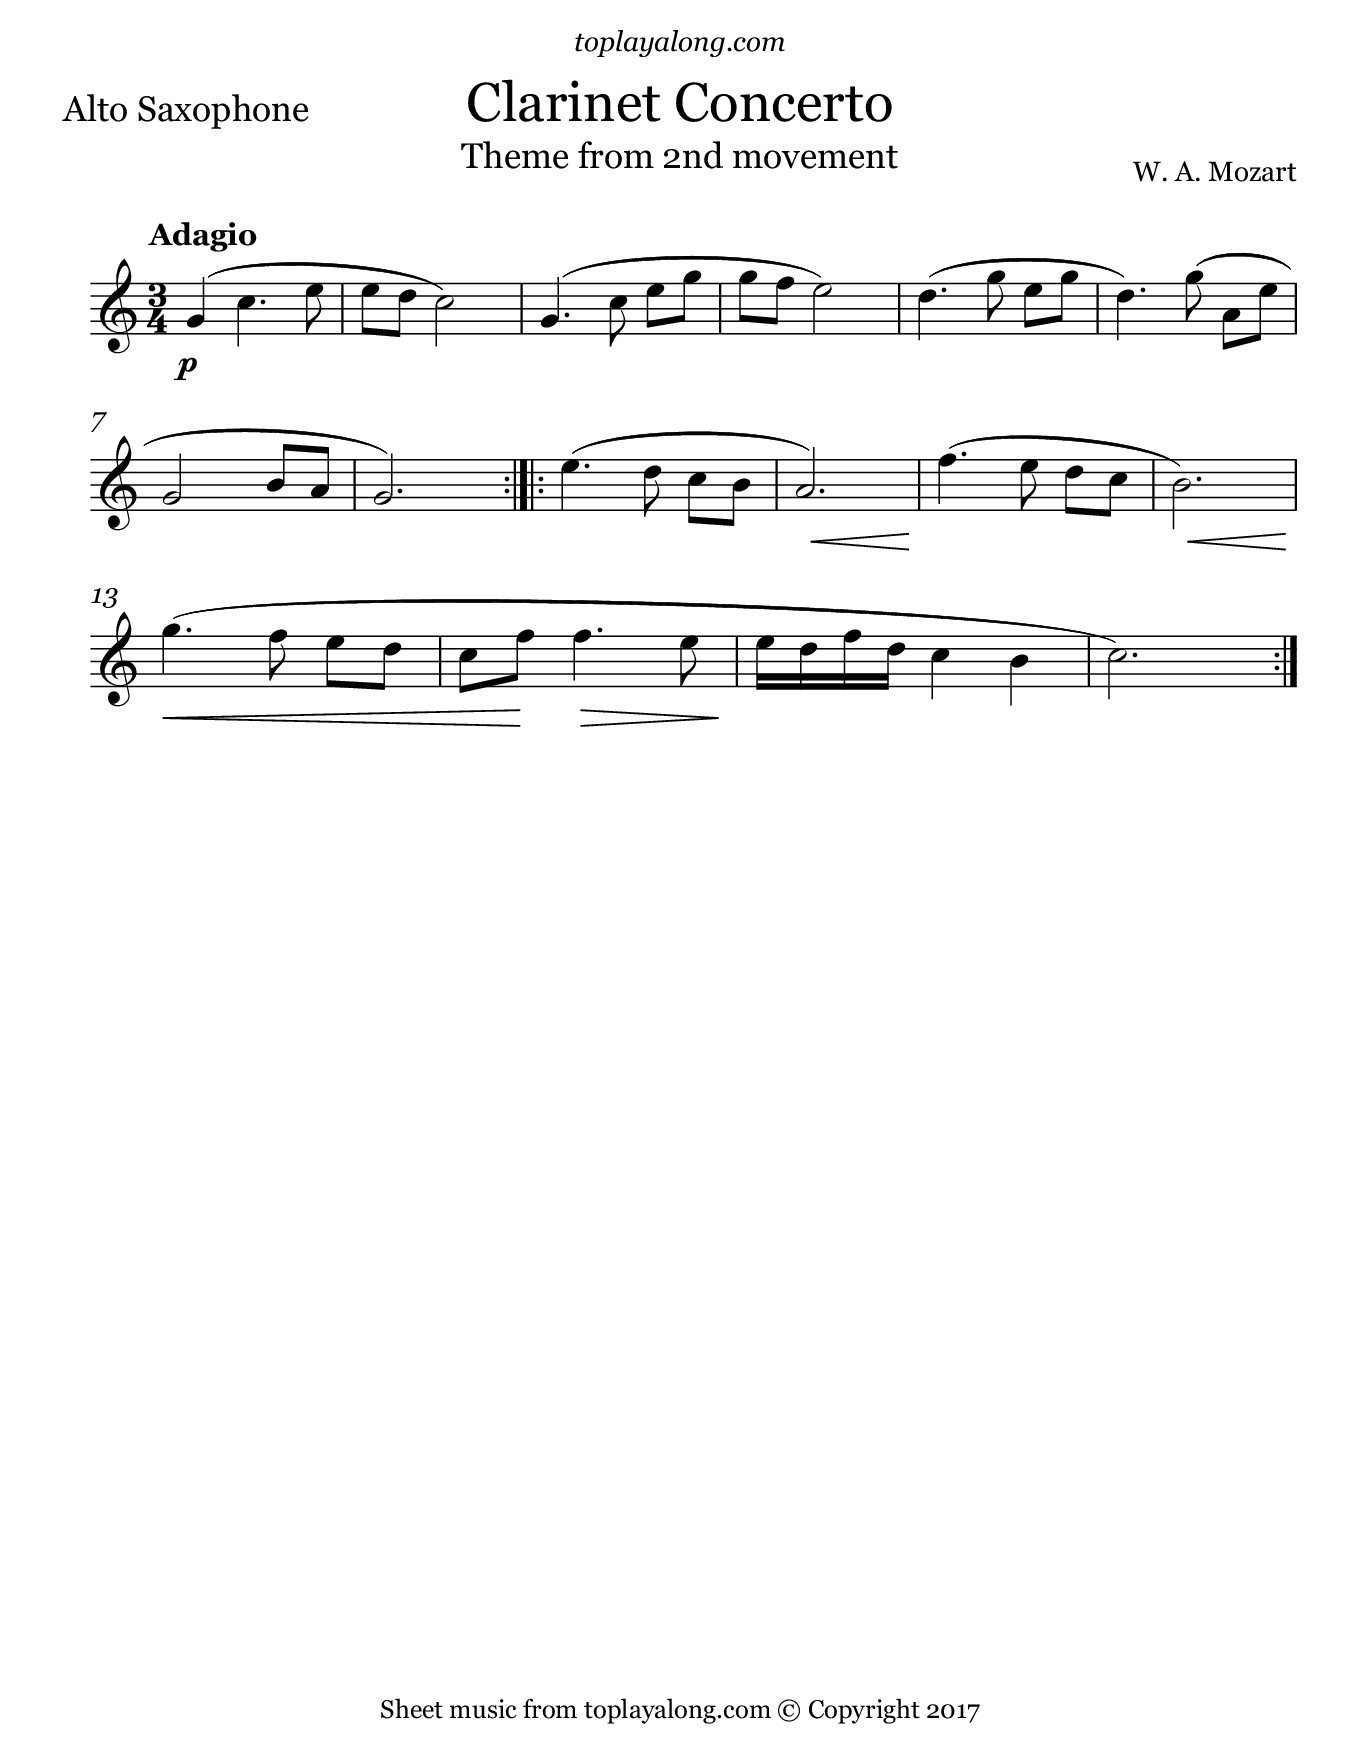 Clarinet Concerto 2nd mvt. (Theme) by Mozart. Sheet music for Alto Sax, page 1.